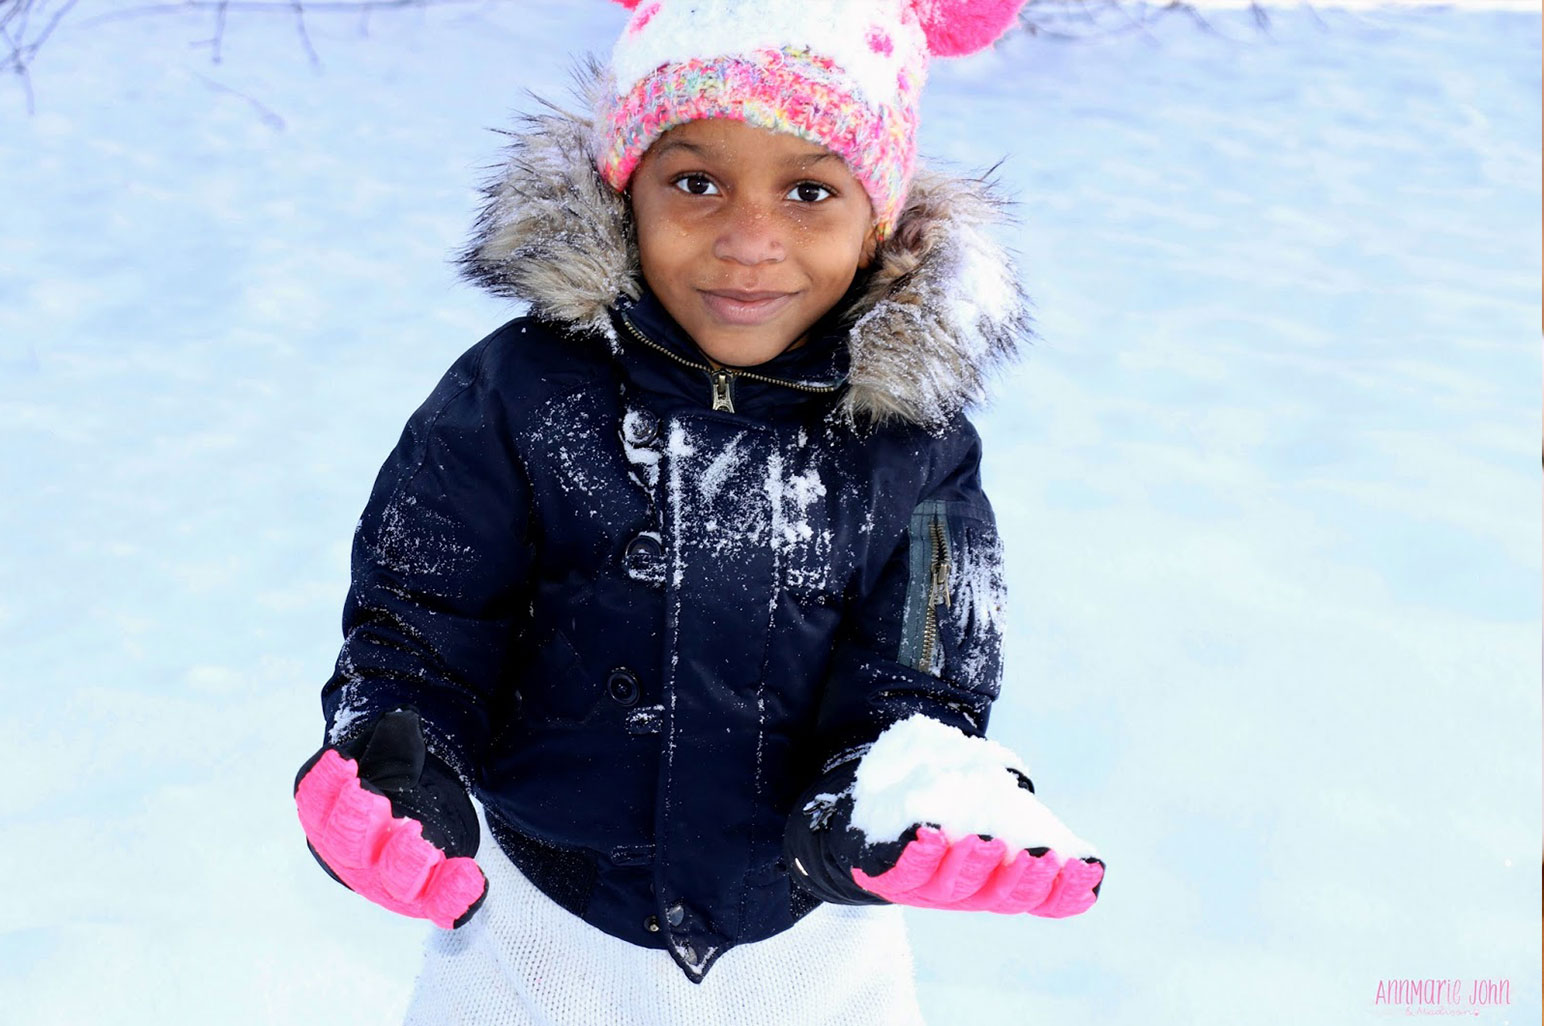 15 Photos to Take of Your Kids During Winter - #CandidWinterMemories